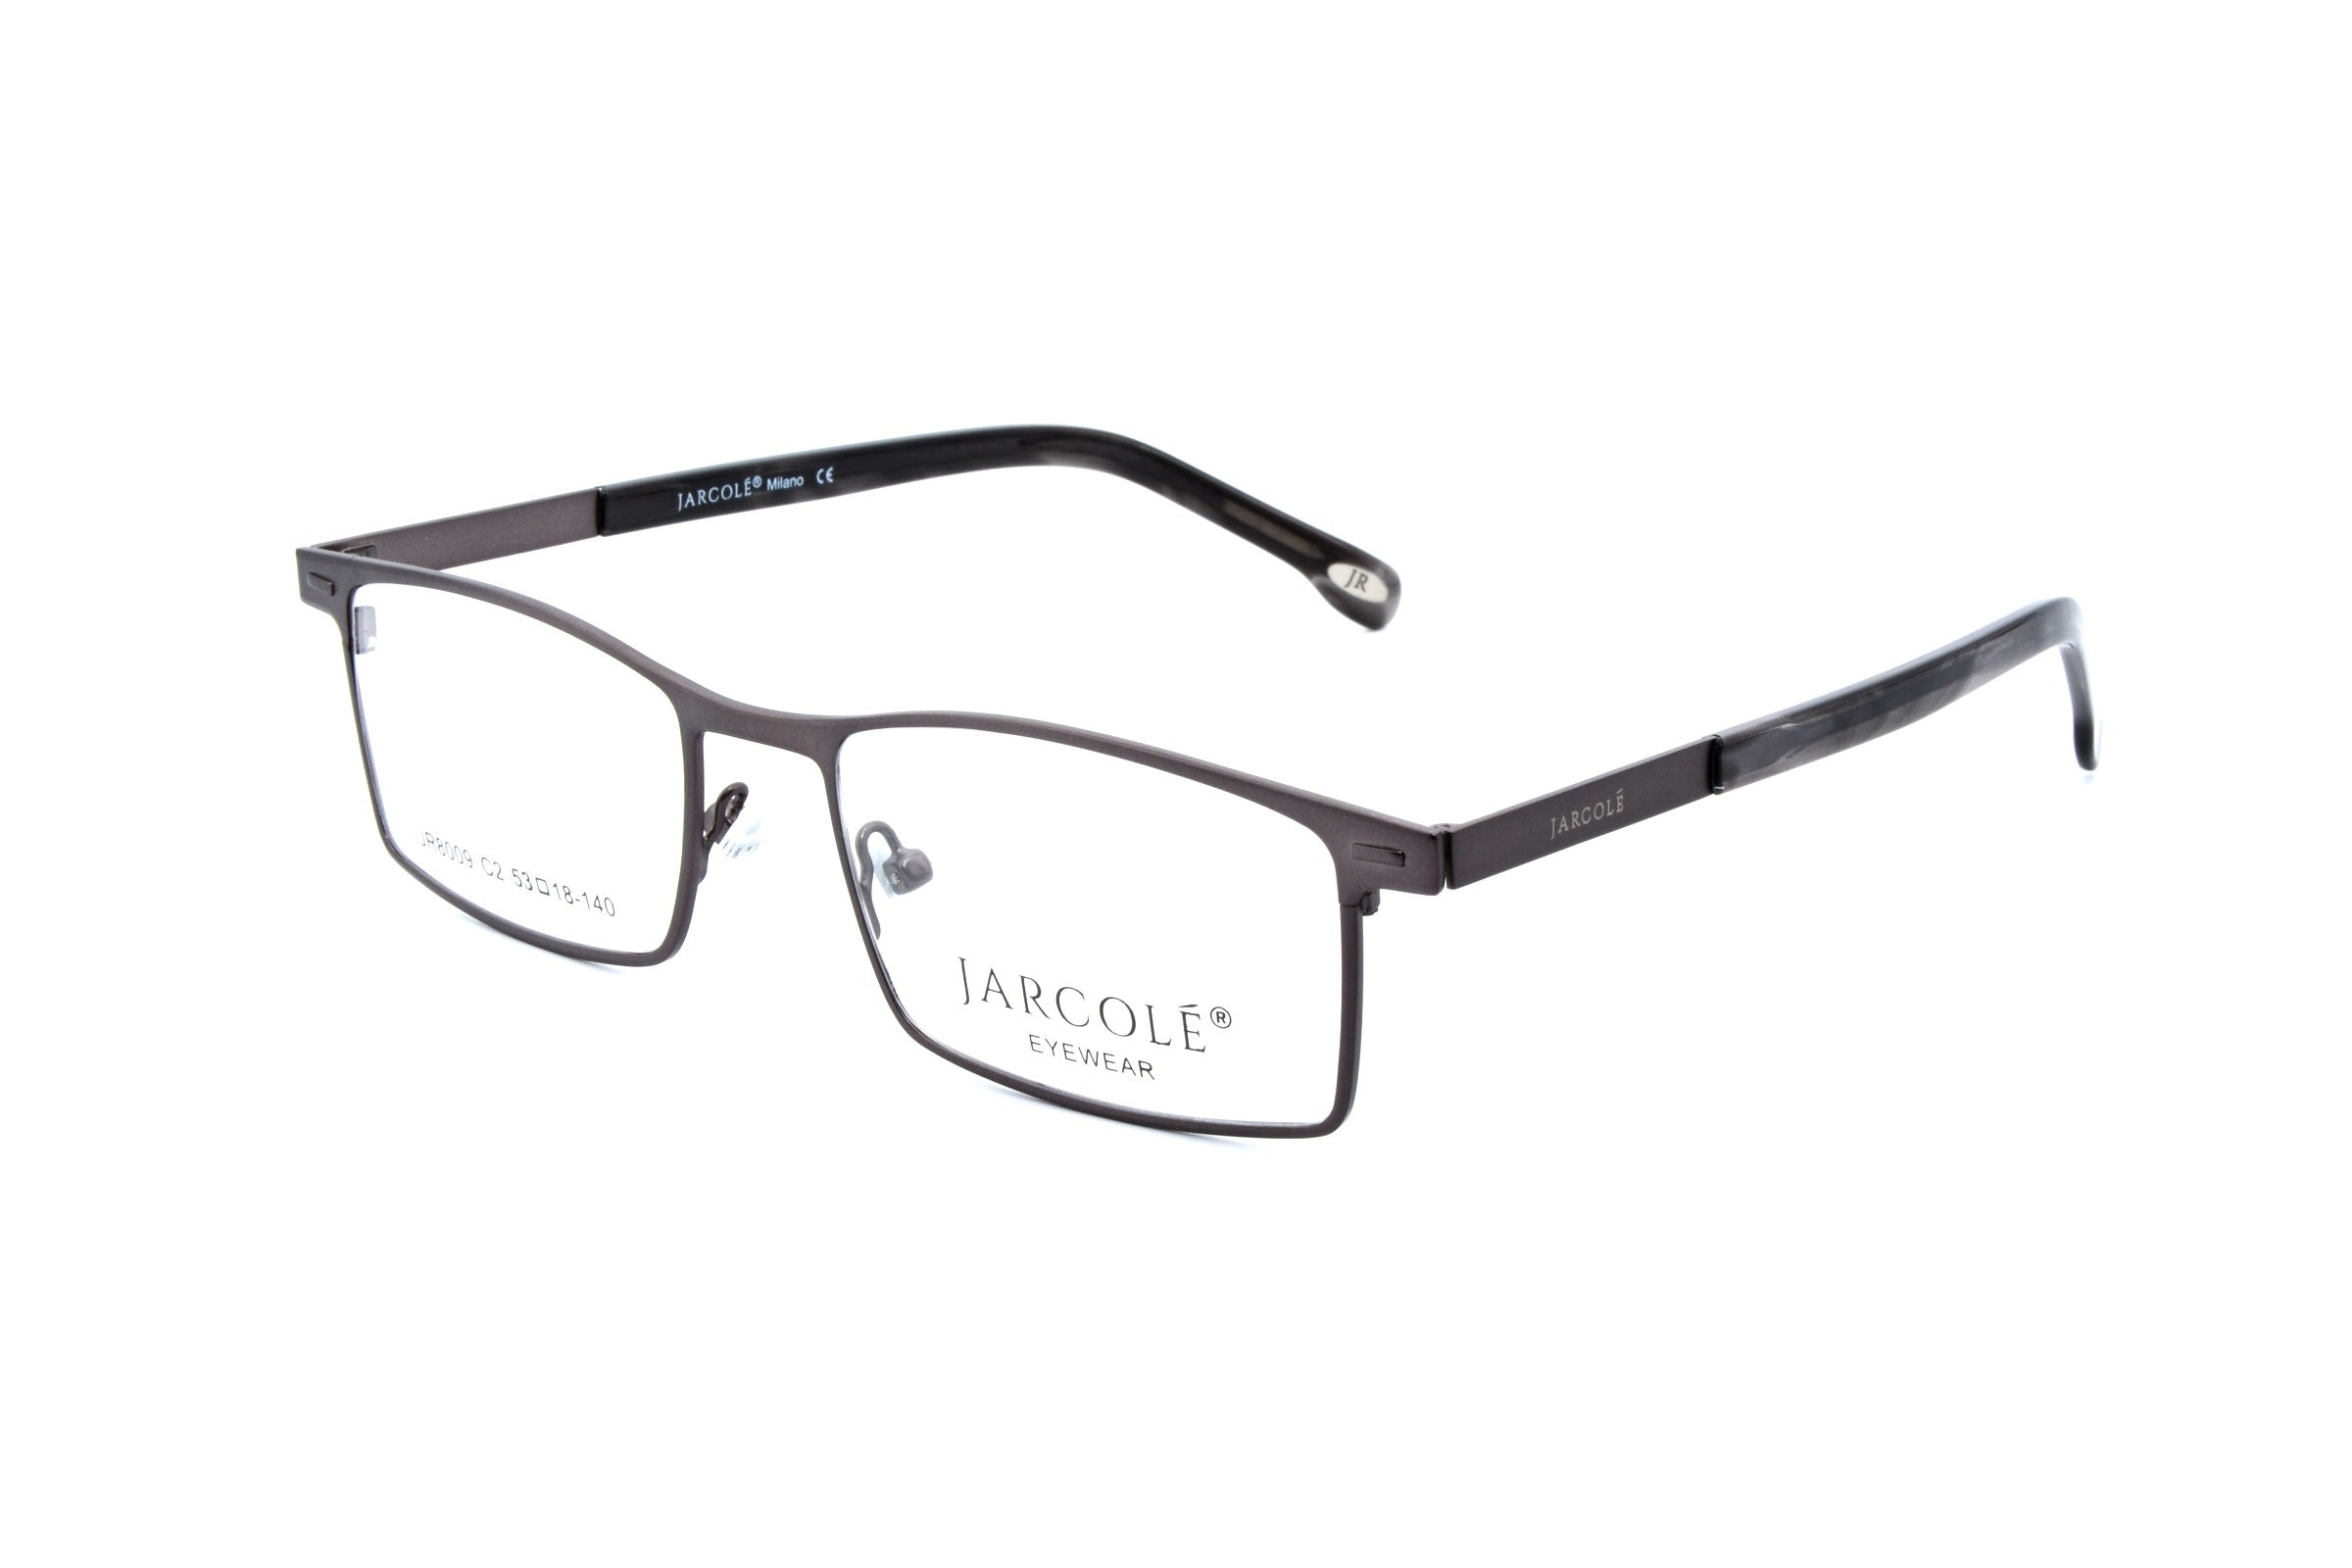 Jarcole eyewear 8009, C2 - Optics Trading